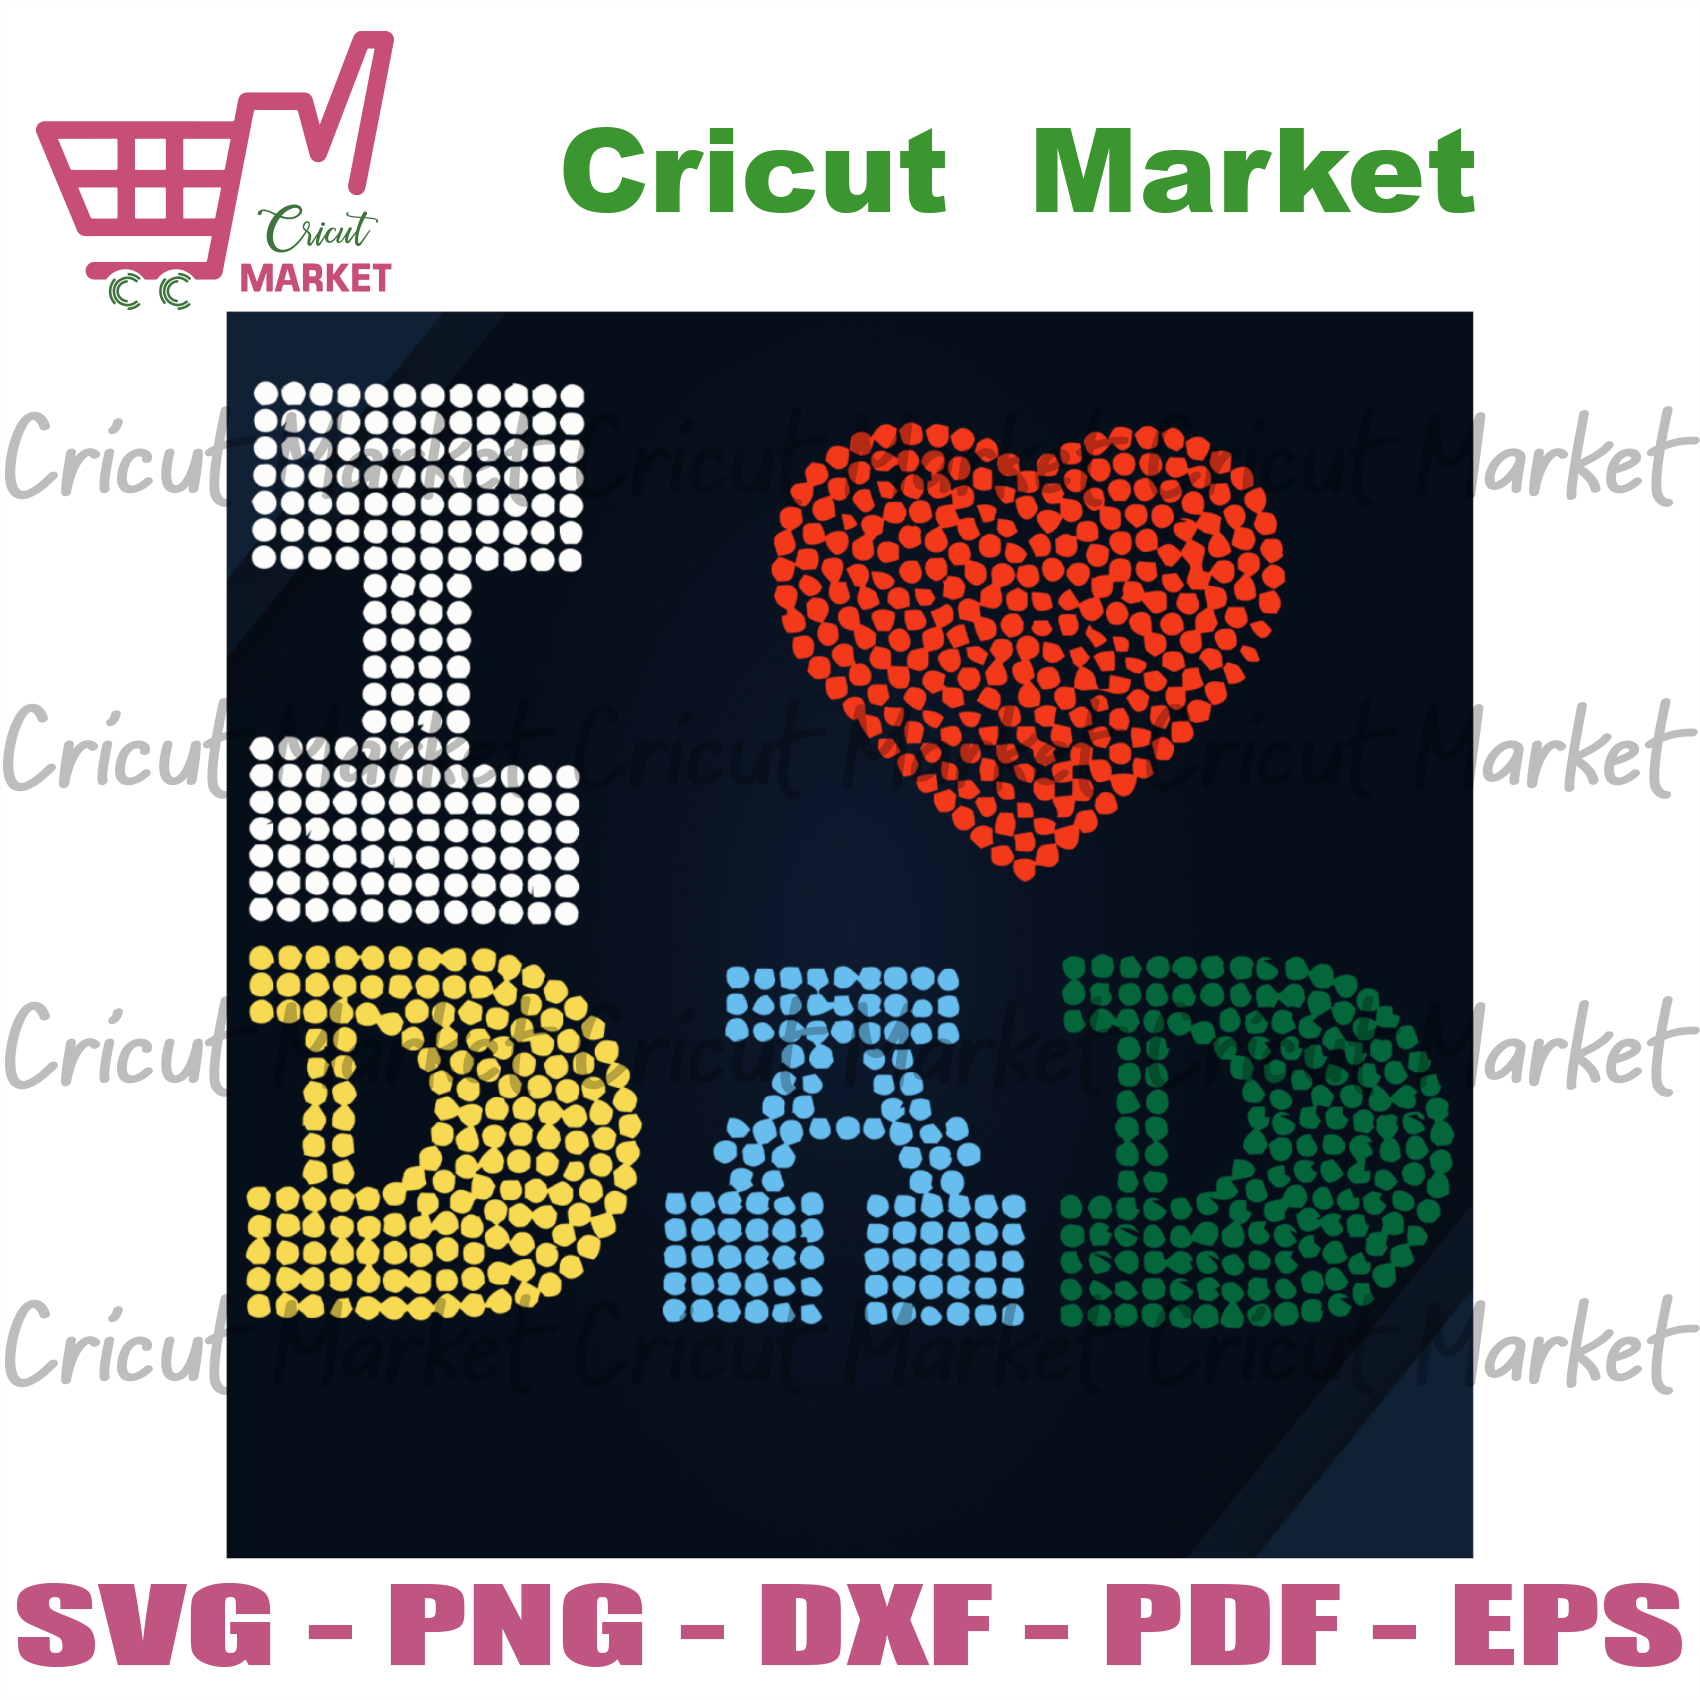 I Love Dad, Father's Day Svg, Happy Father's Day, Gift For Dad, Best Dad Ever, Dad Shirt Svg, Father's Day Gift, Ideal Gift, Father's Day Shirts, Father's Day Gifts, Gift For Daddy, Daddy svg